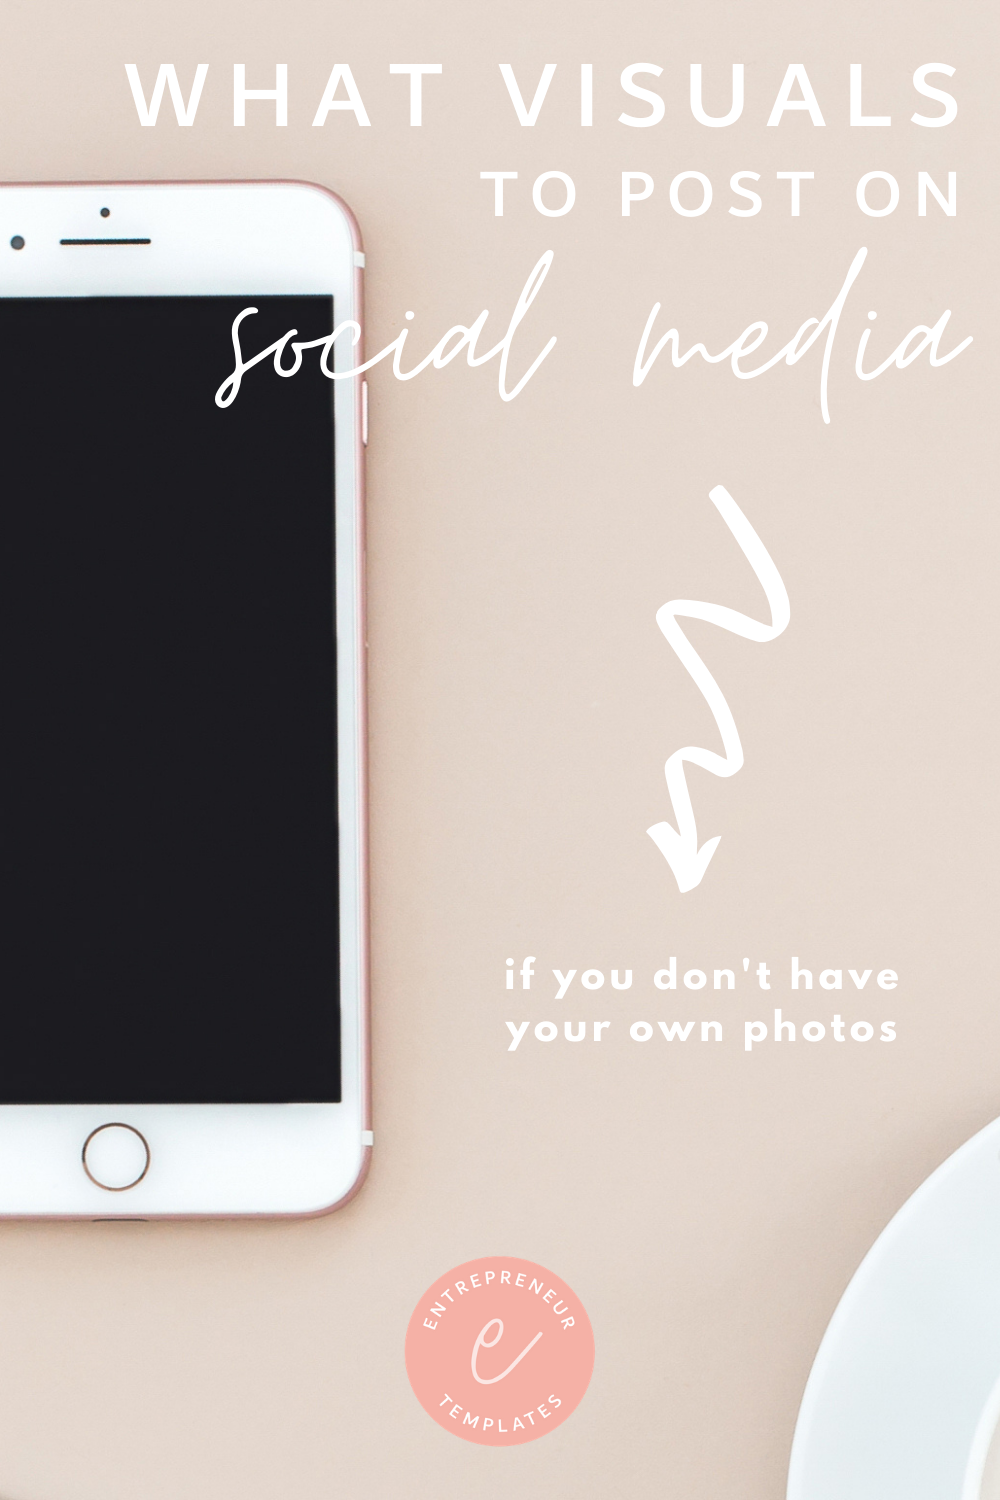 What Visuals to Post on Social Media